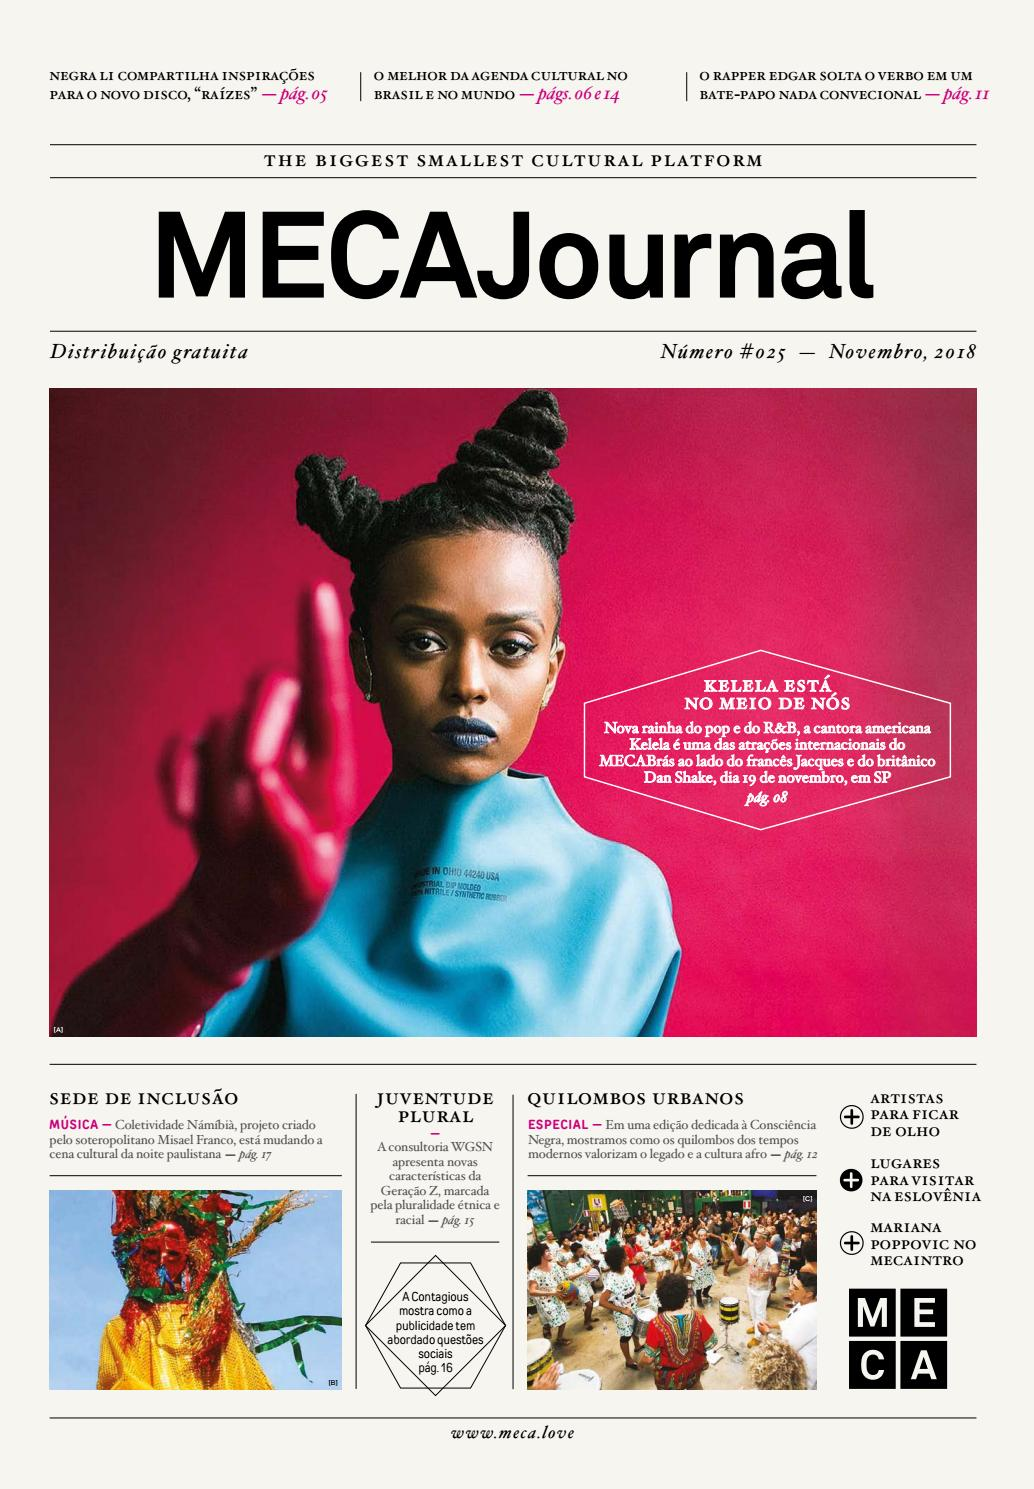 bd591df9d MECAJournal   25 - Novembro 2018 by MECALove - issuu